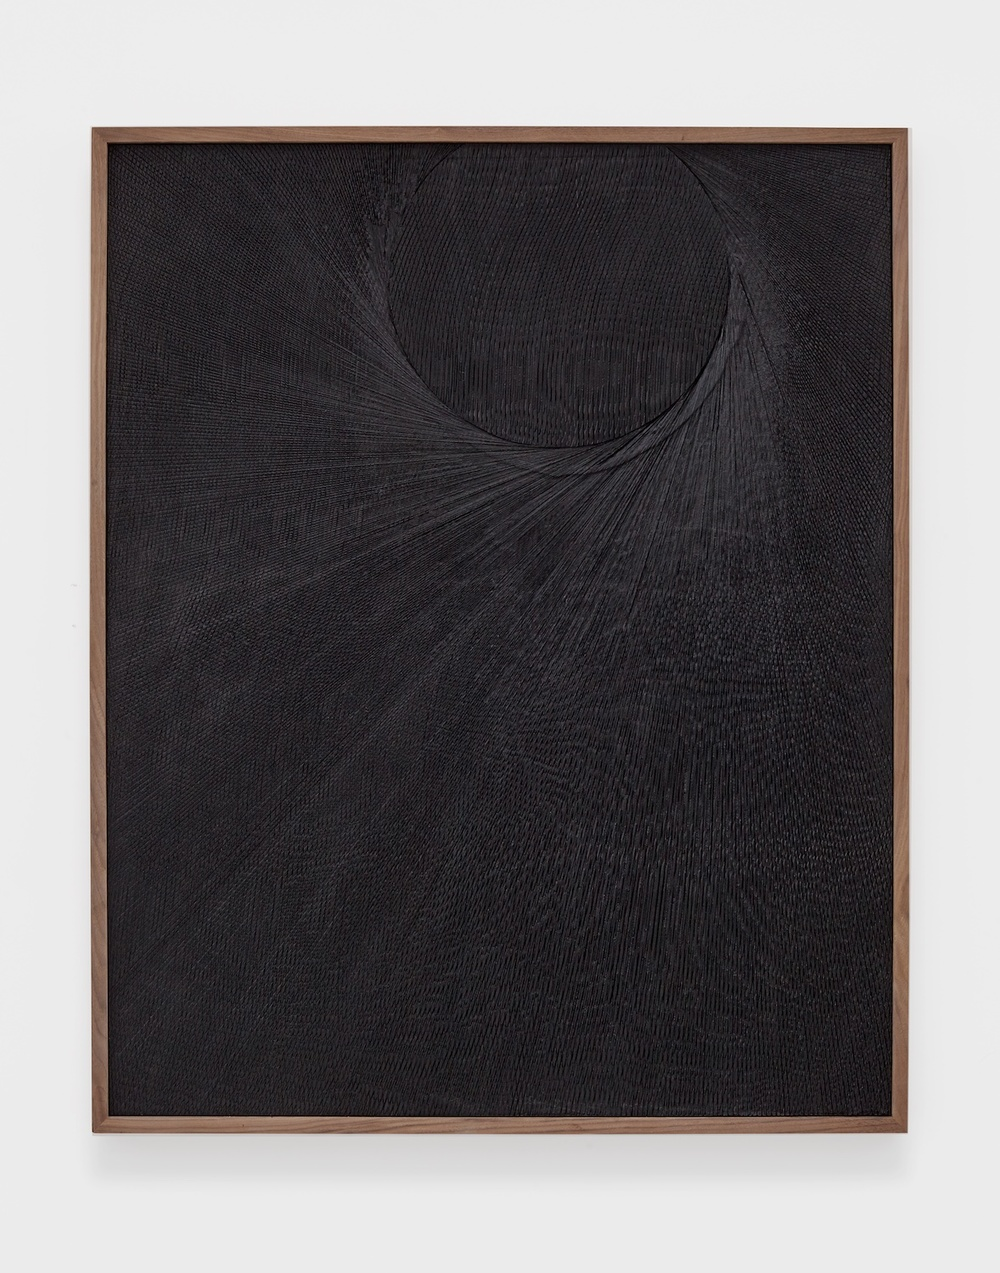 "Anthony Pearson Untitled (Etched Plaster) 2015 Medium coated pigmented hydrocal in walnut frame 49"" x 40"" x 2 ½"" AP368"